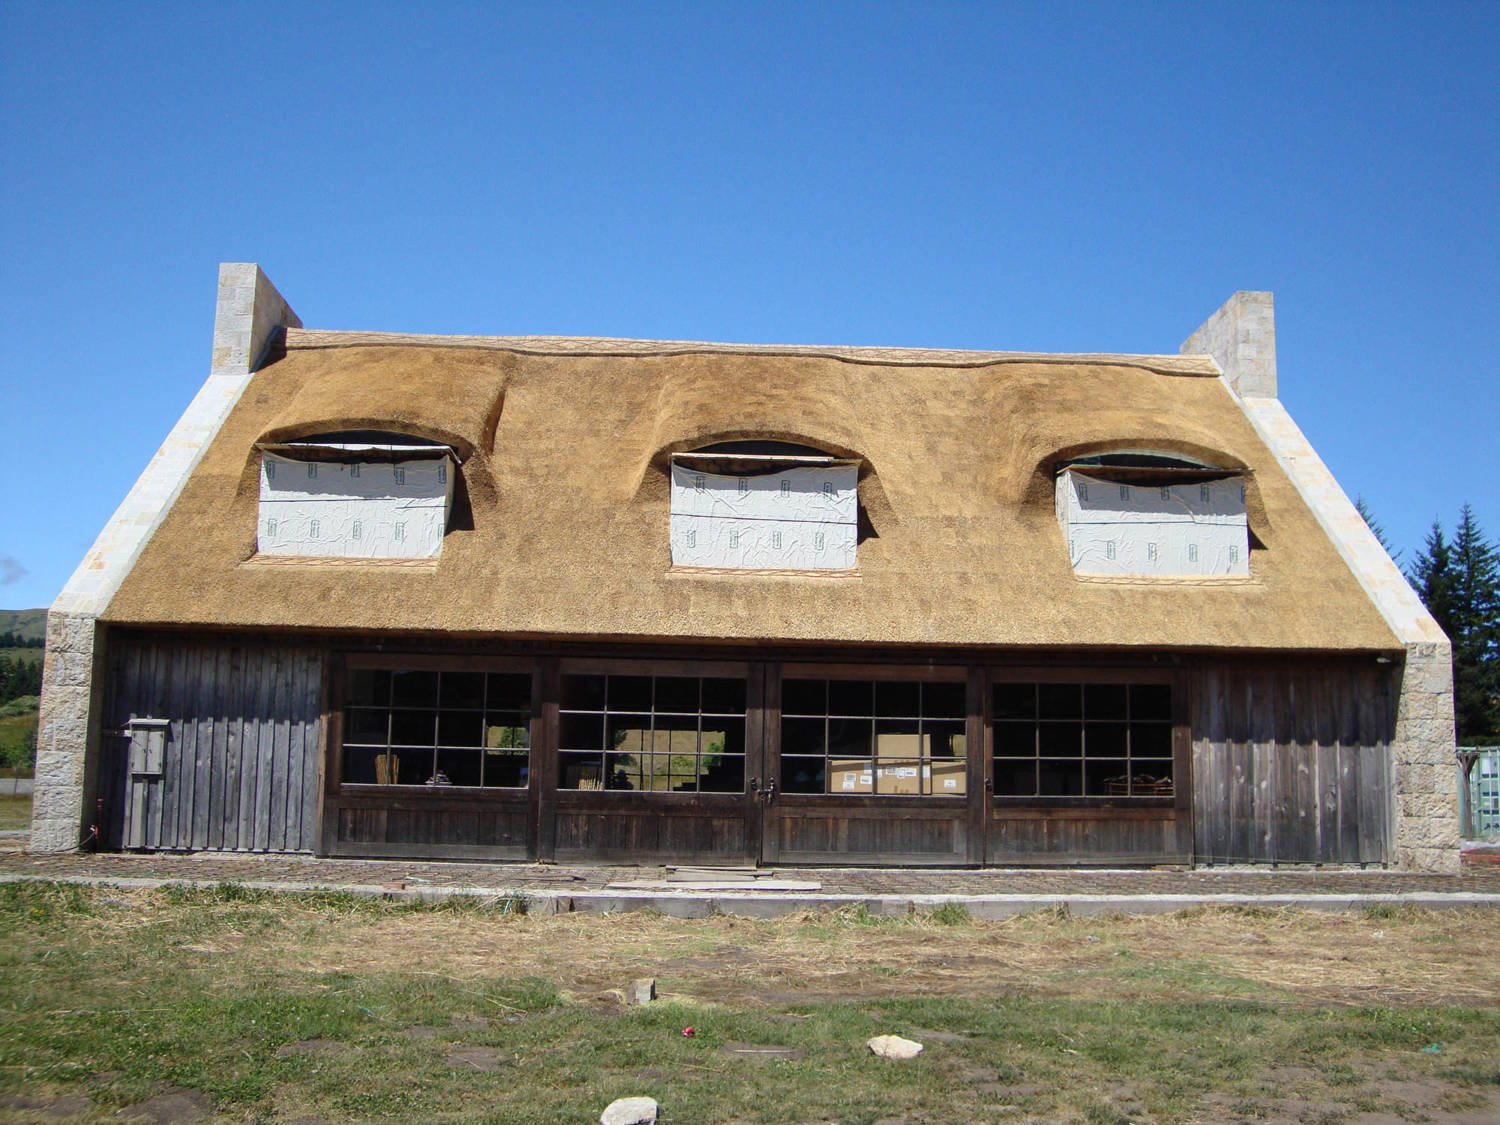 Thatched_Roof_California_1